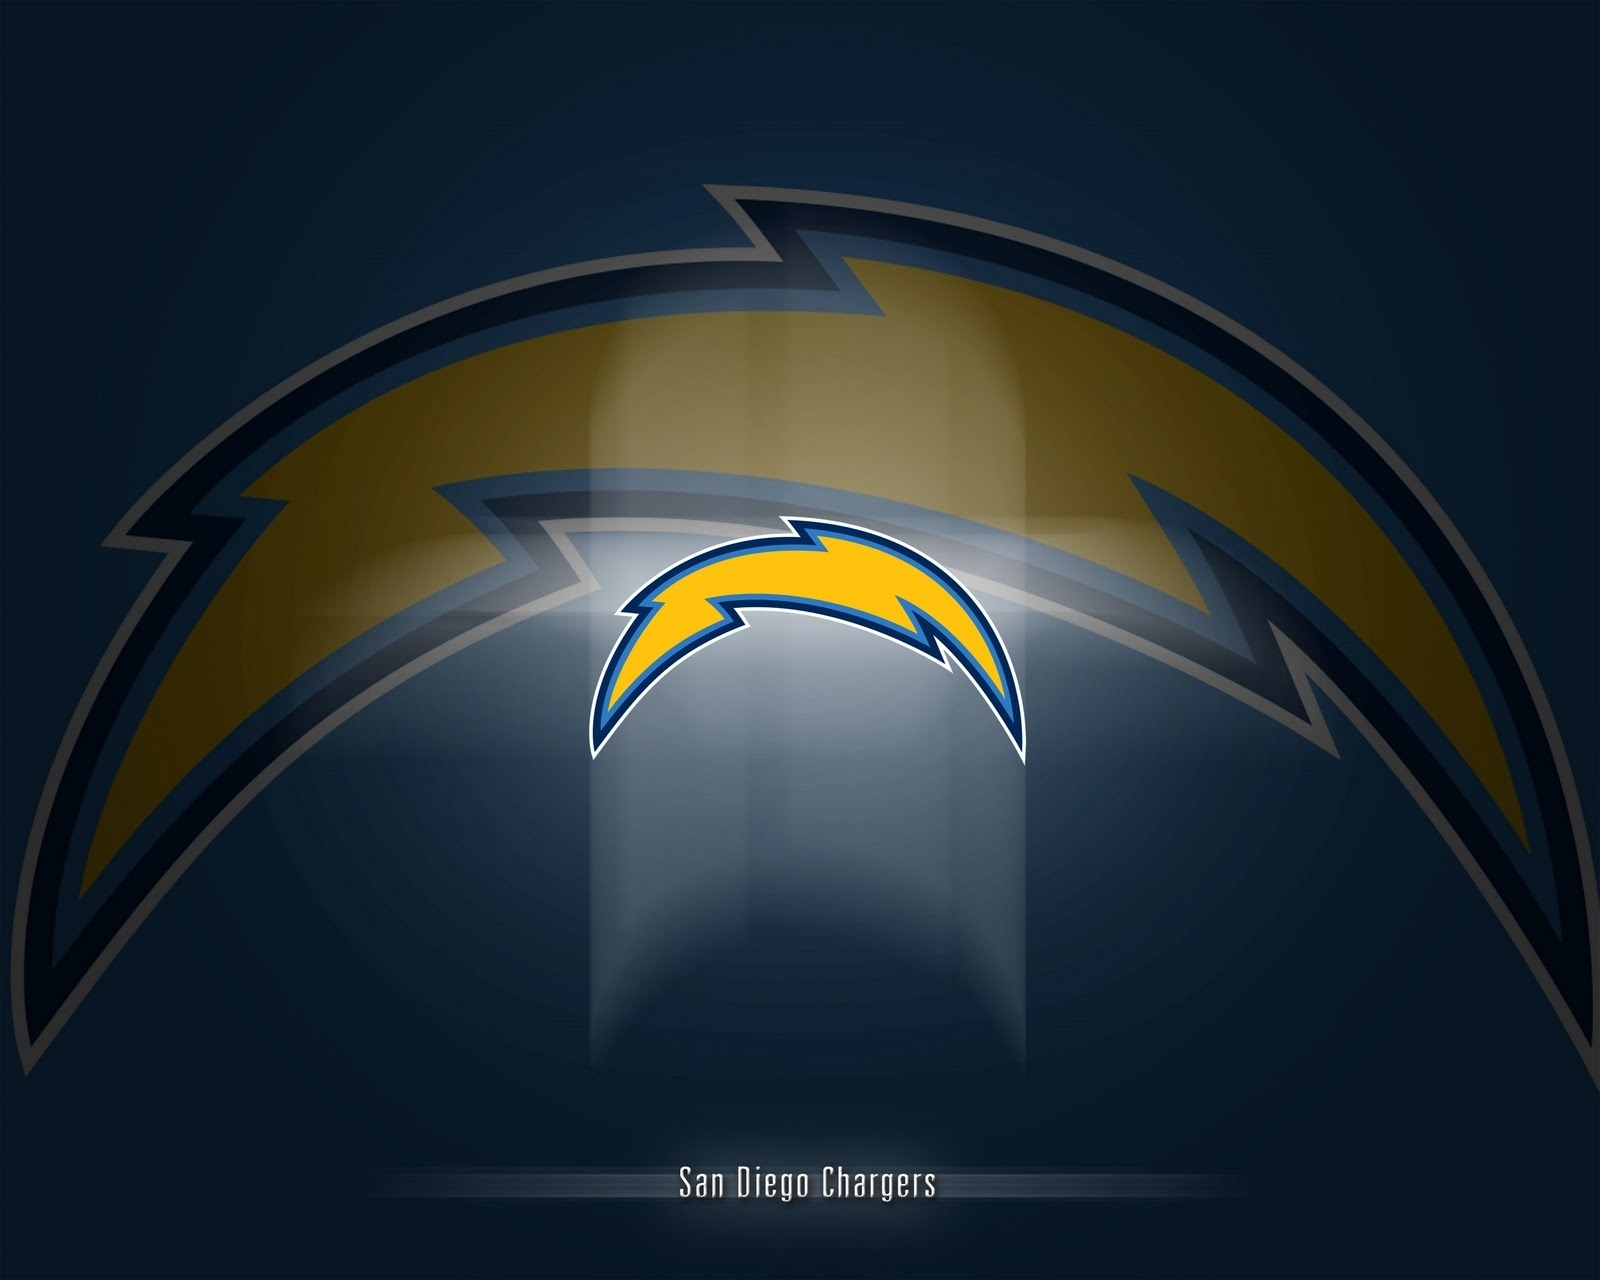 10 New San Diego Charger Wallpaper FULL HD 1080p For PC Background